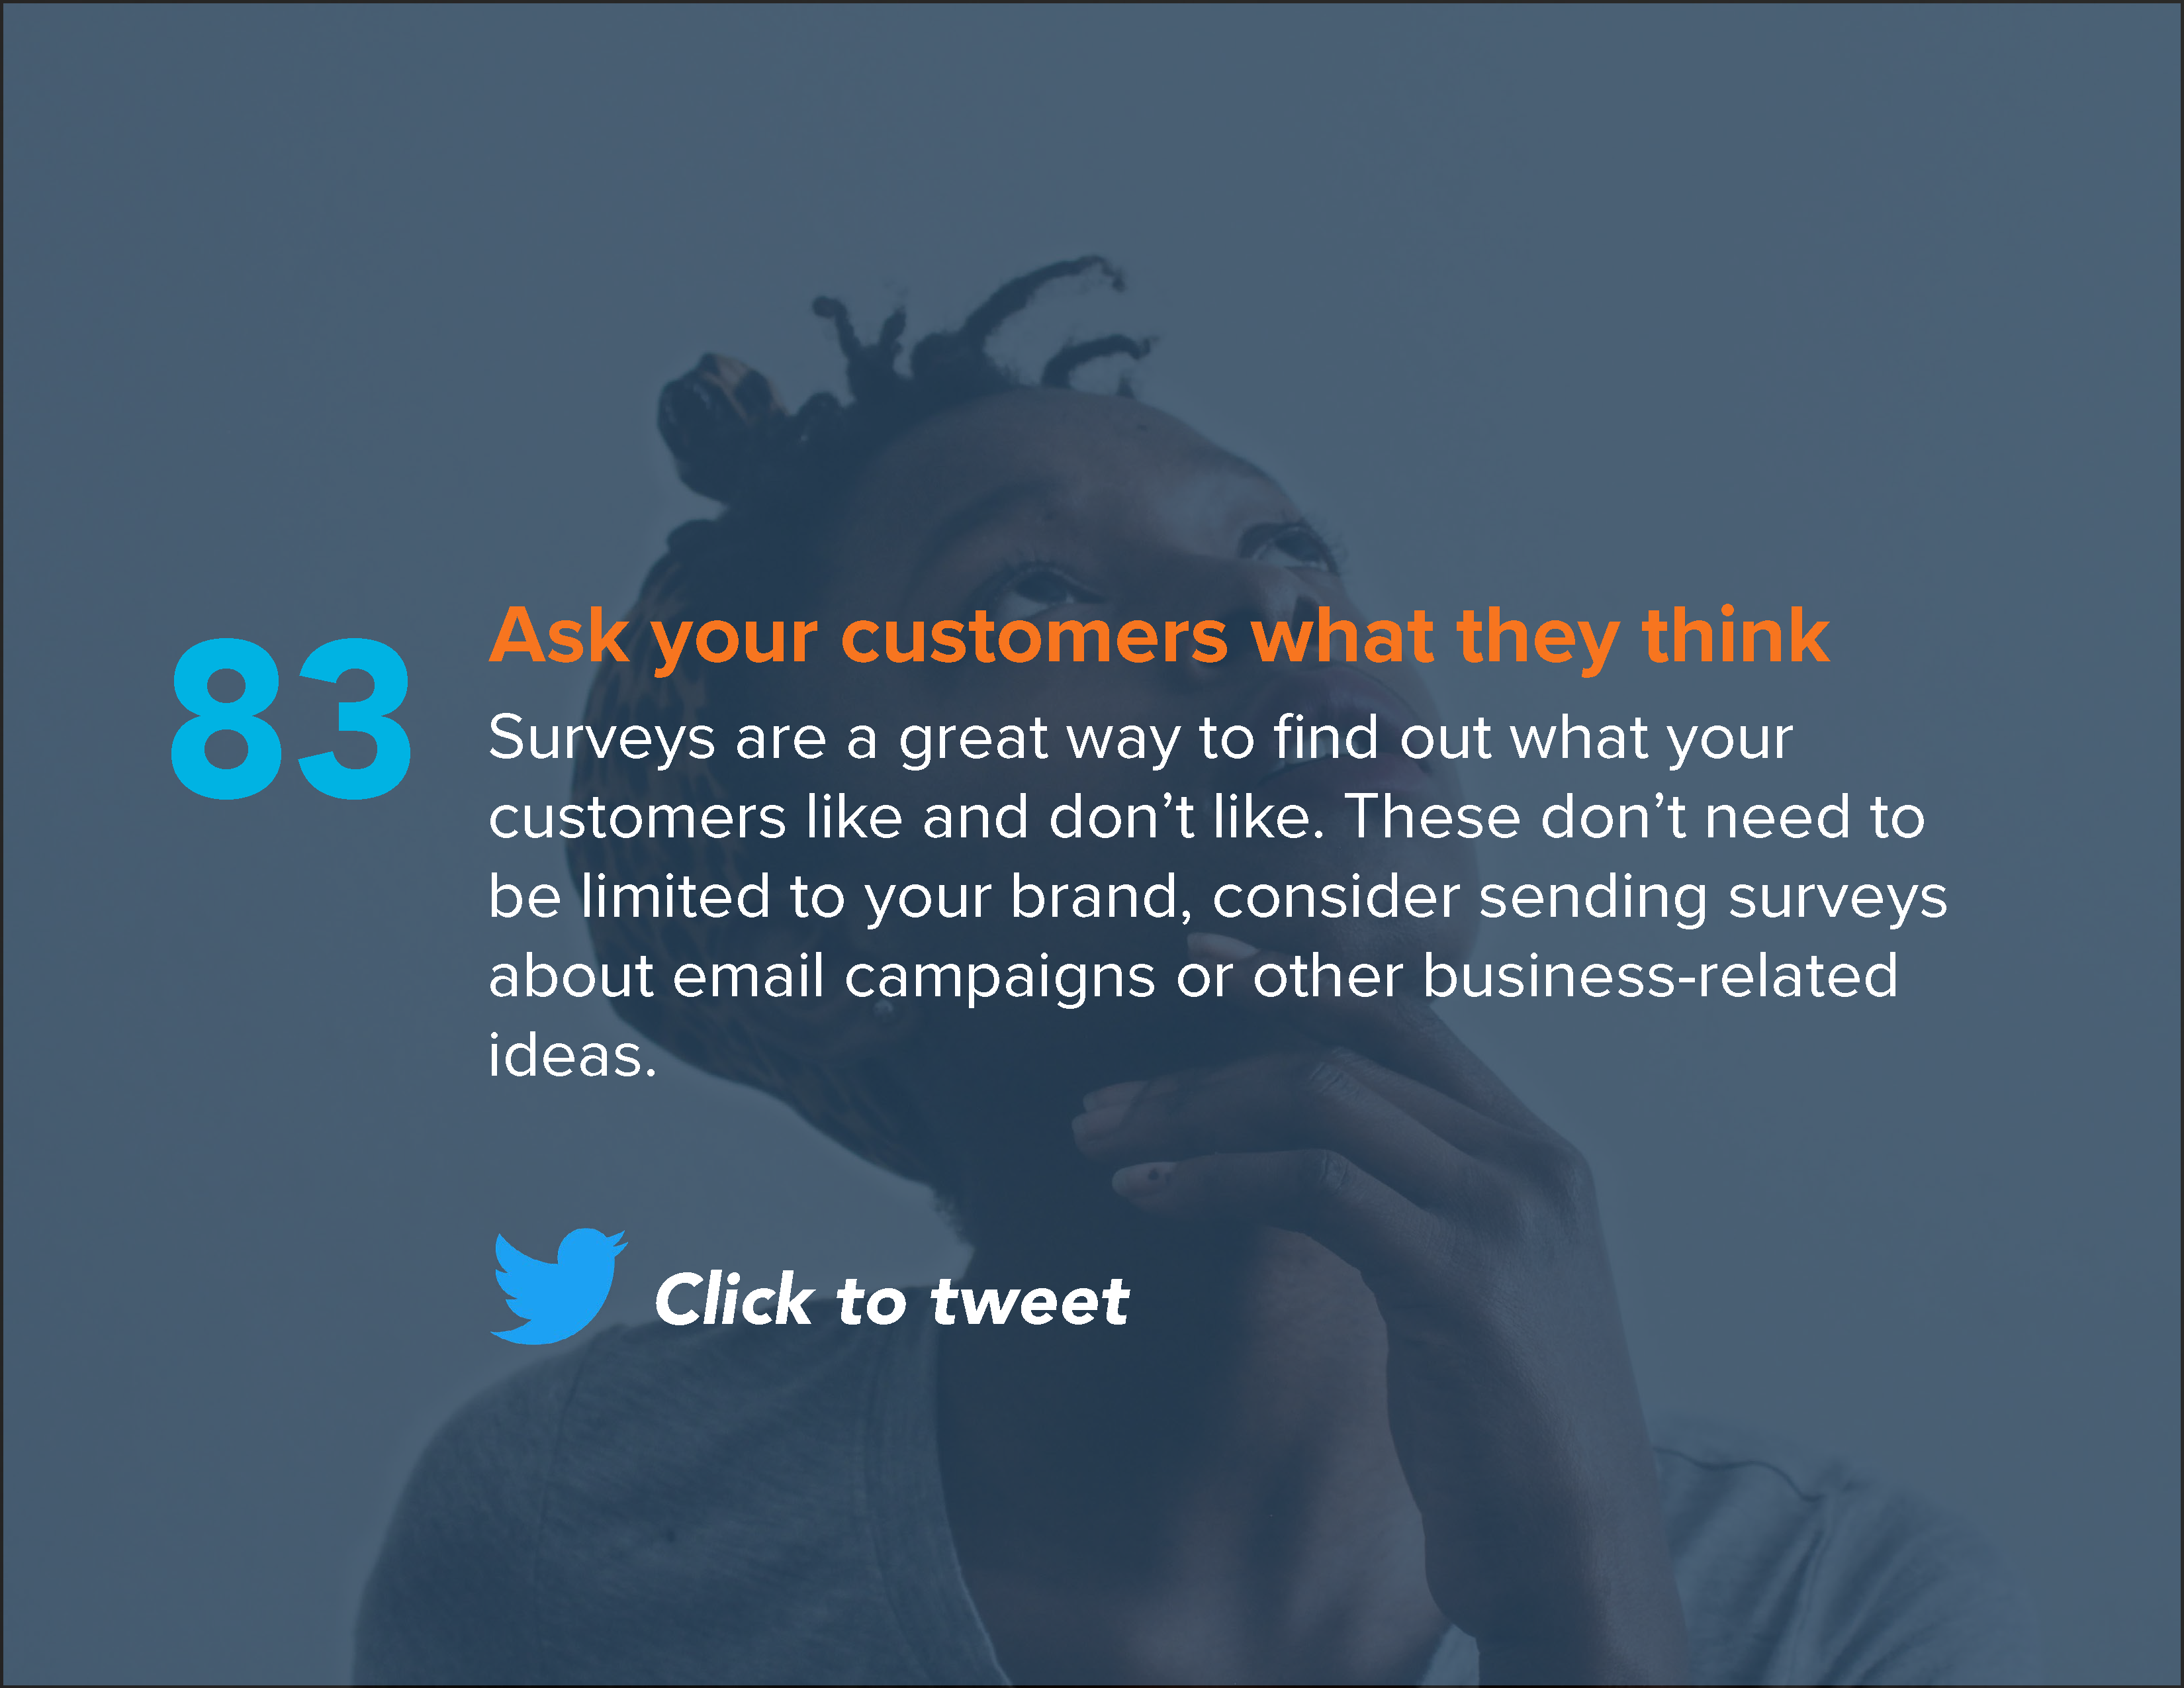 Email_Marketing Myths_Experiments_Inspiration Ebook_6.png